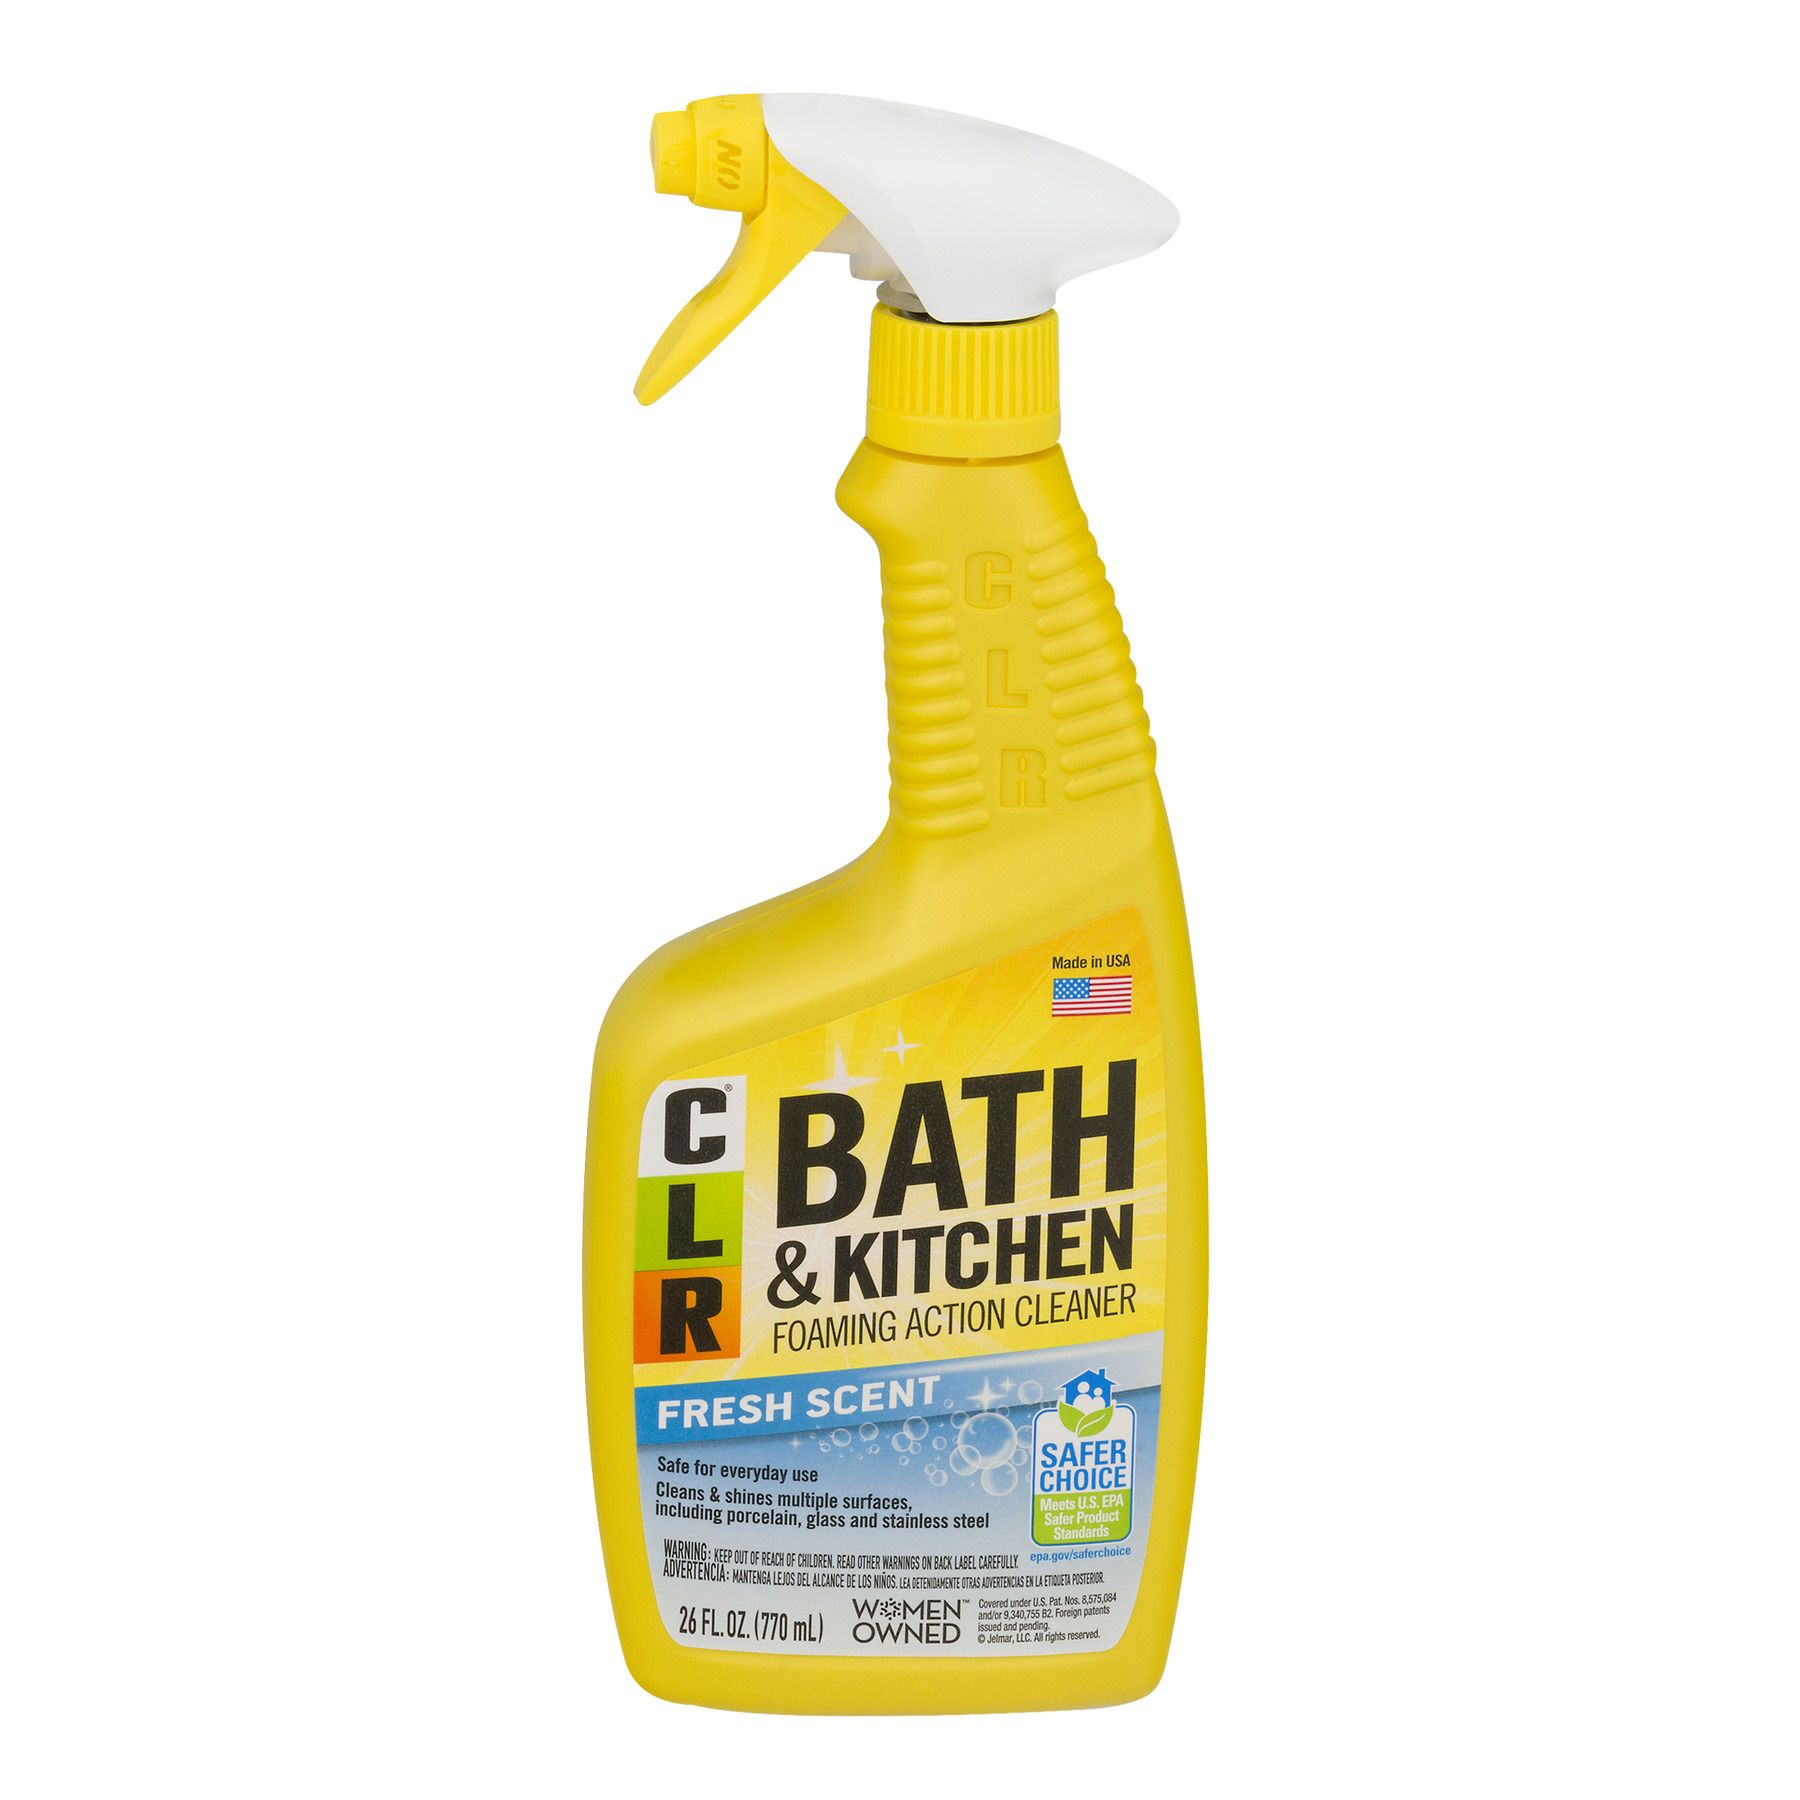 bath and kitchen foaming action cleaner